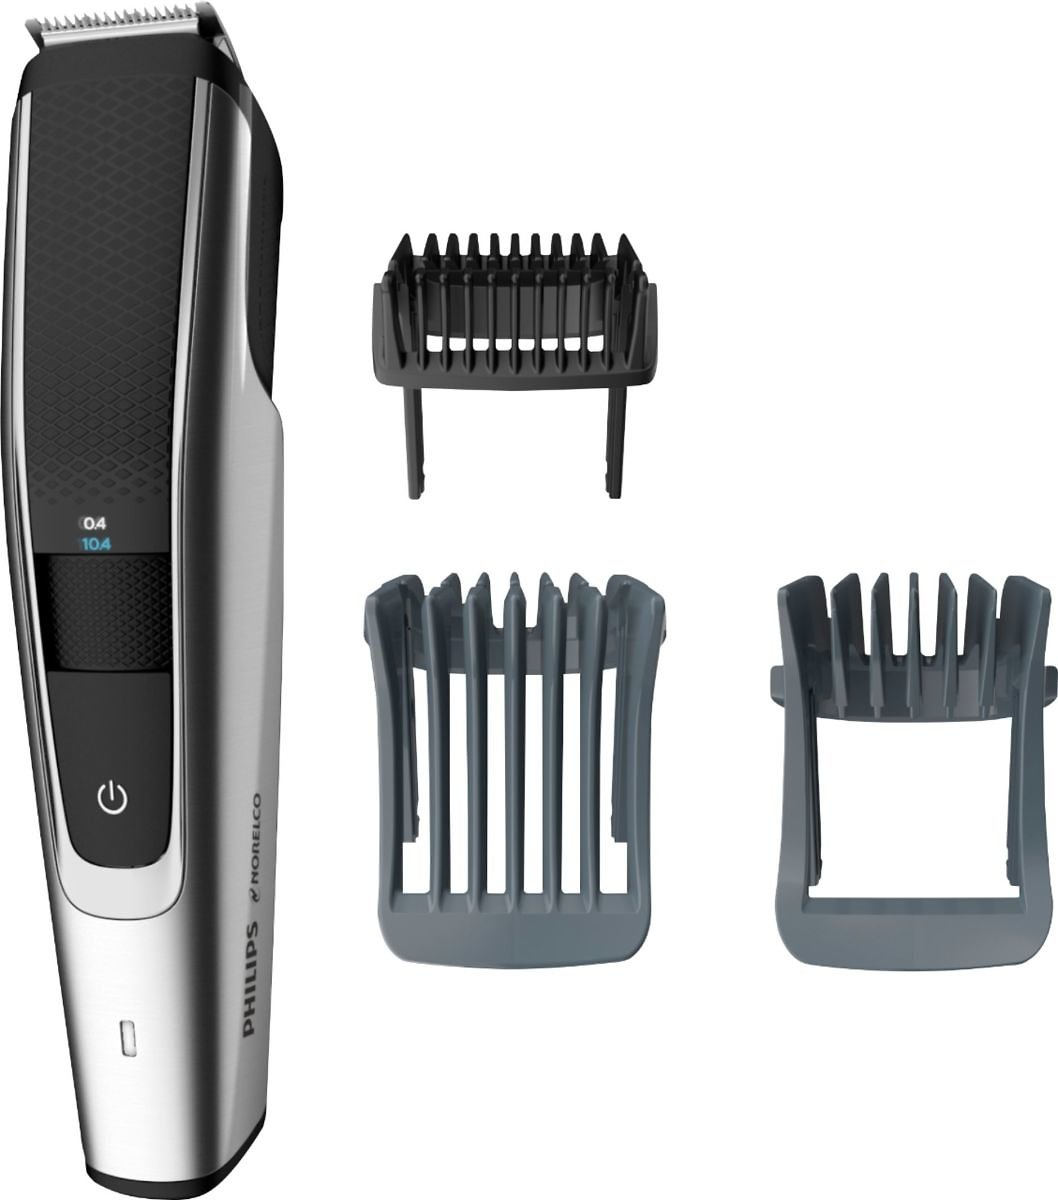 Philips Norelco 5000 Series Hair Trimmer Black/Silver BT5511/49